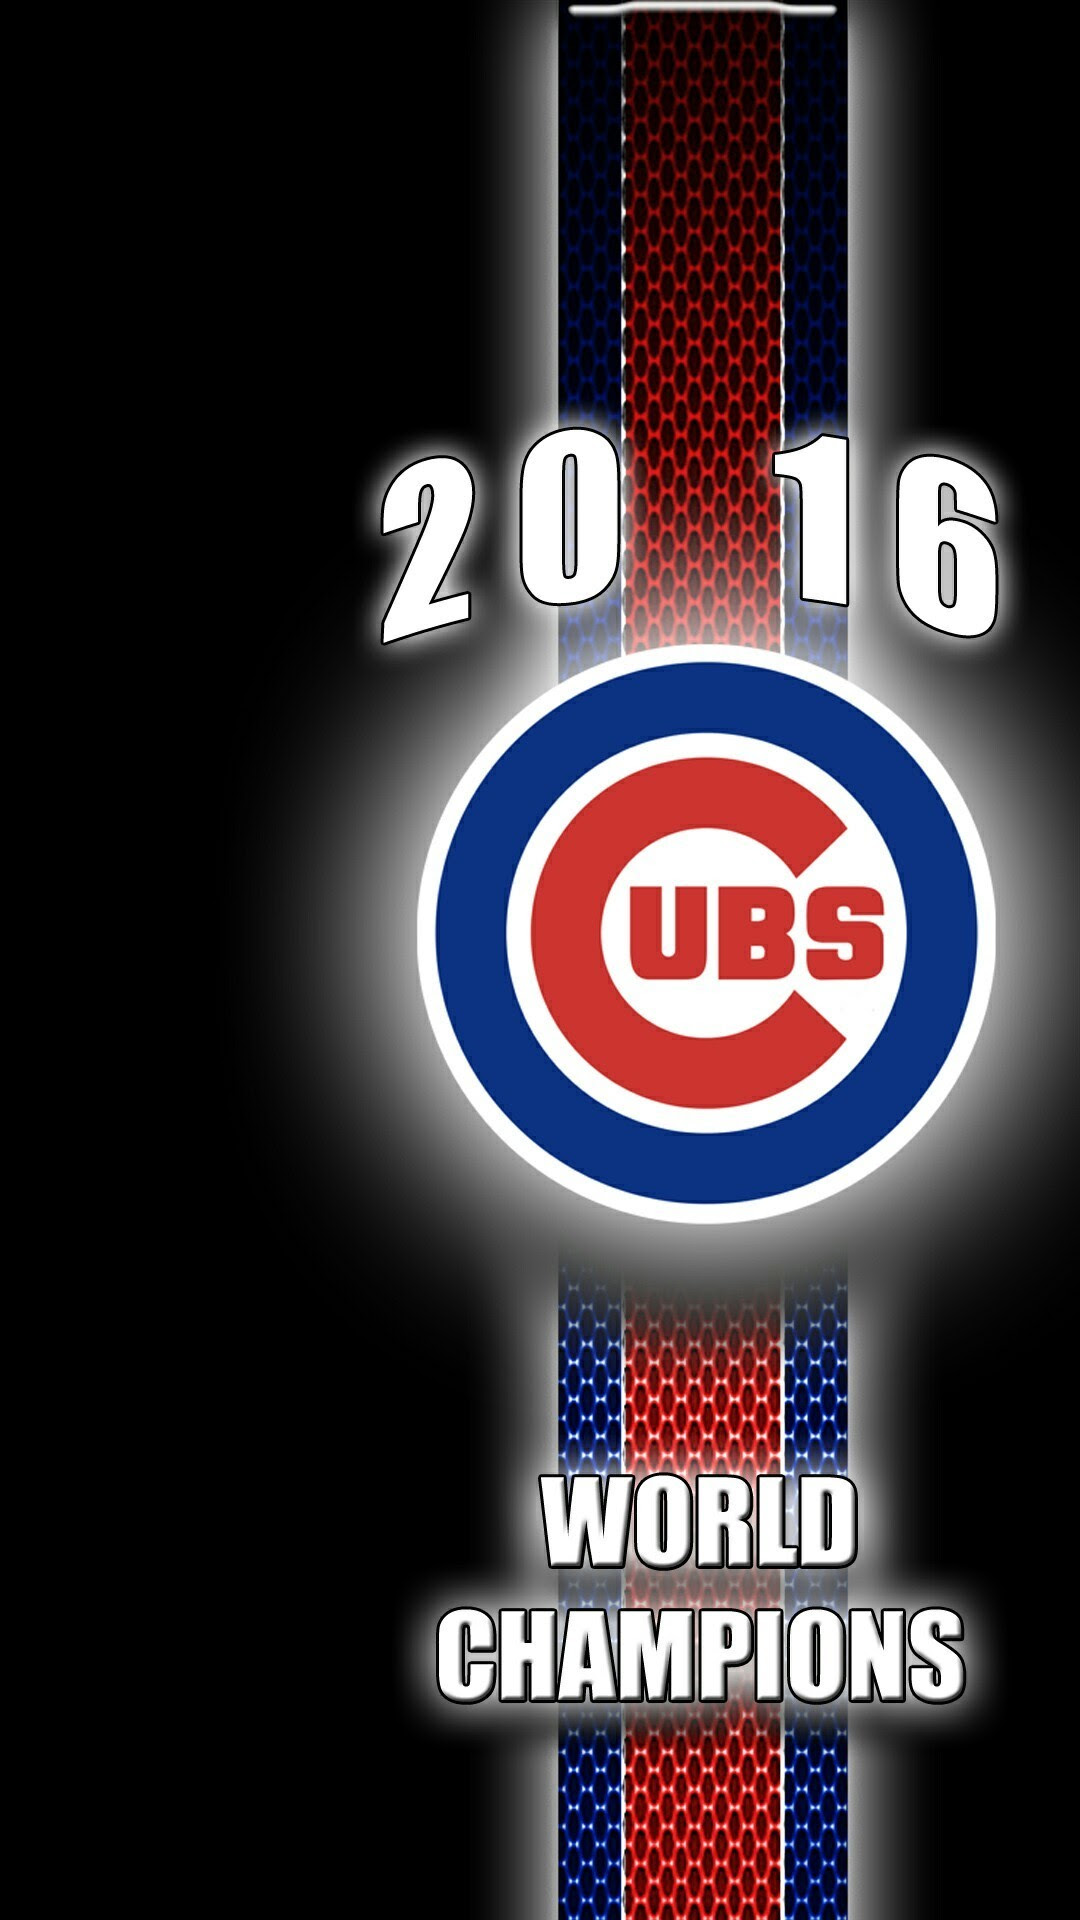 Cool Chicago Cubs Logo Wallpaper (68+ images)